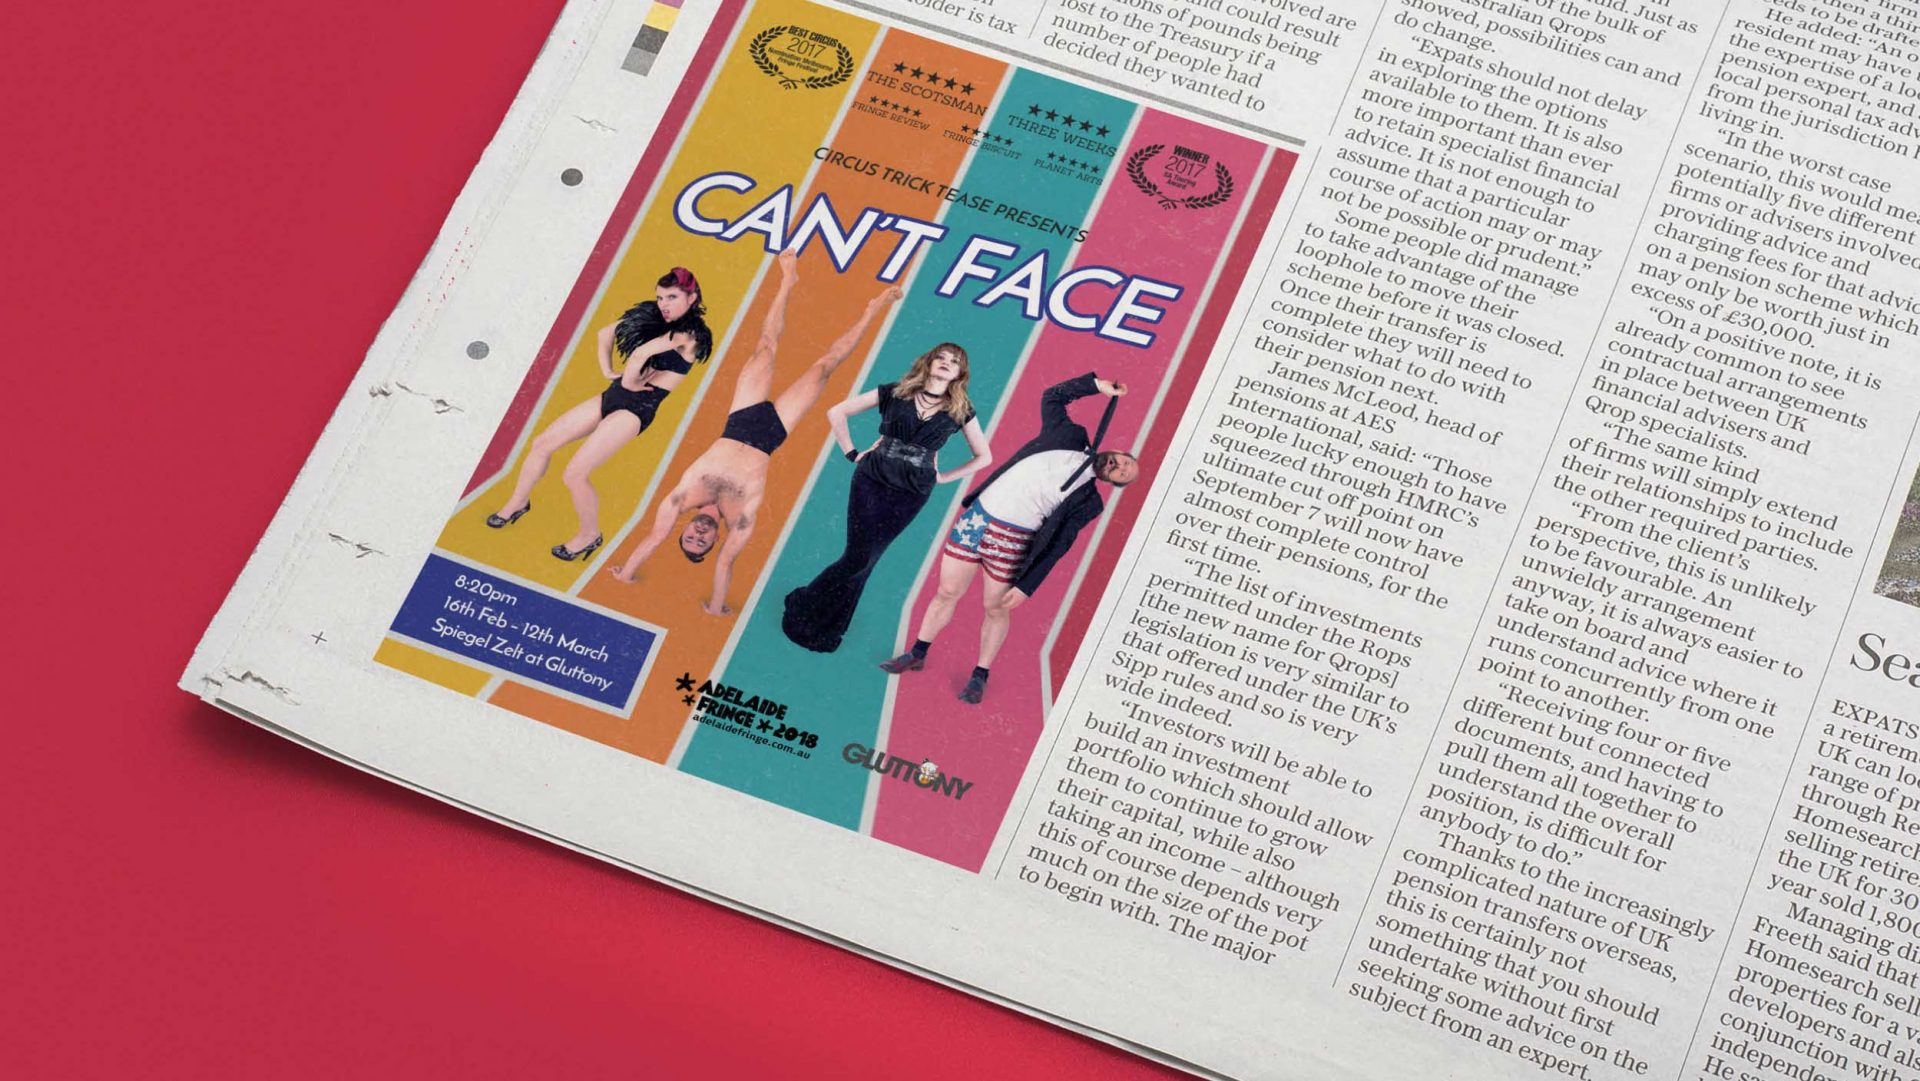 'Can't Face' Newspaper Advertisement Circus Trick Tease